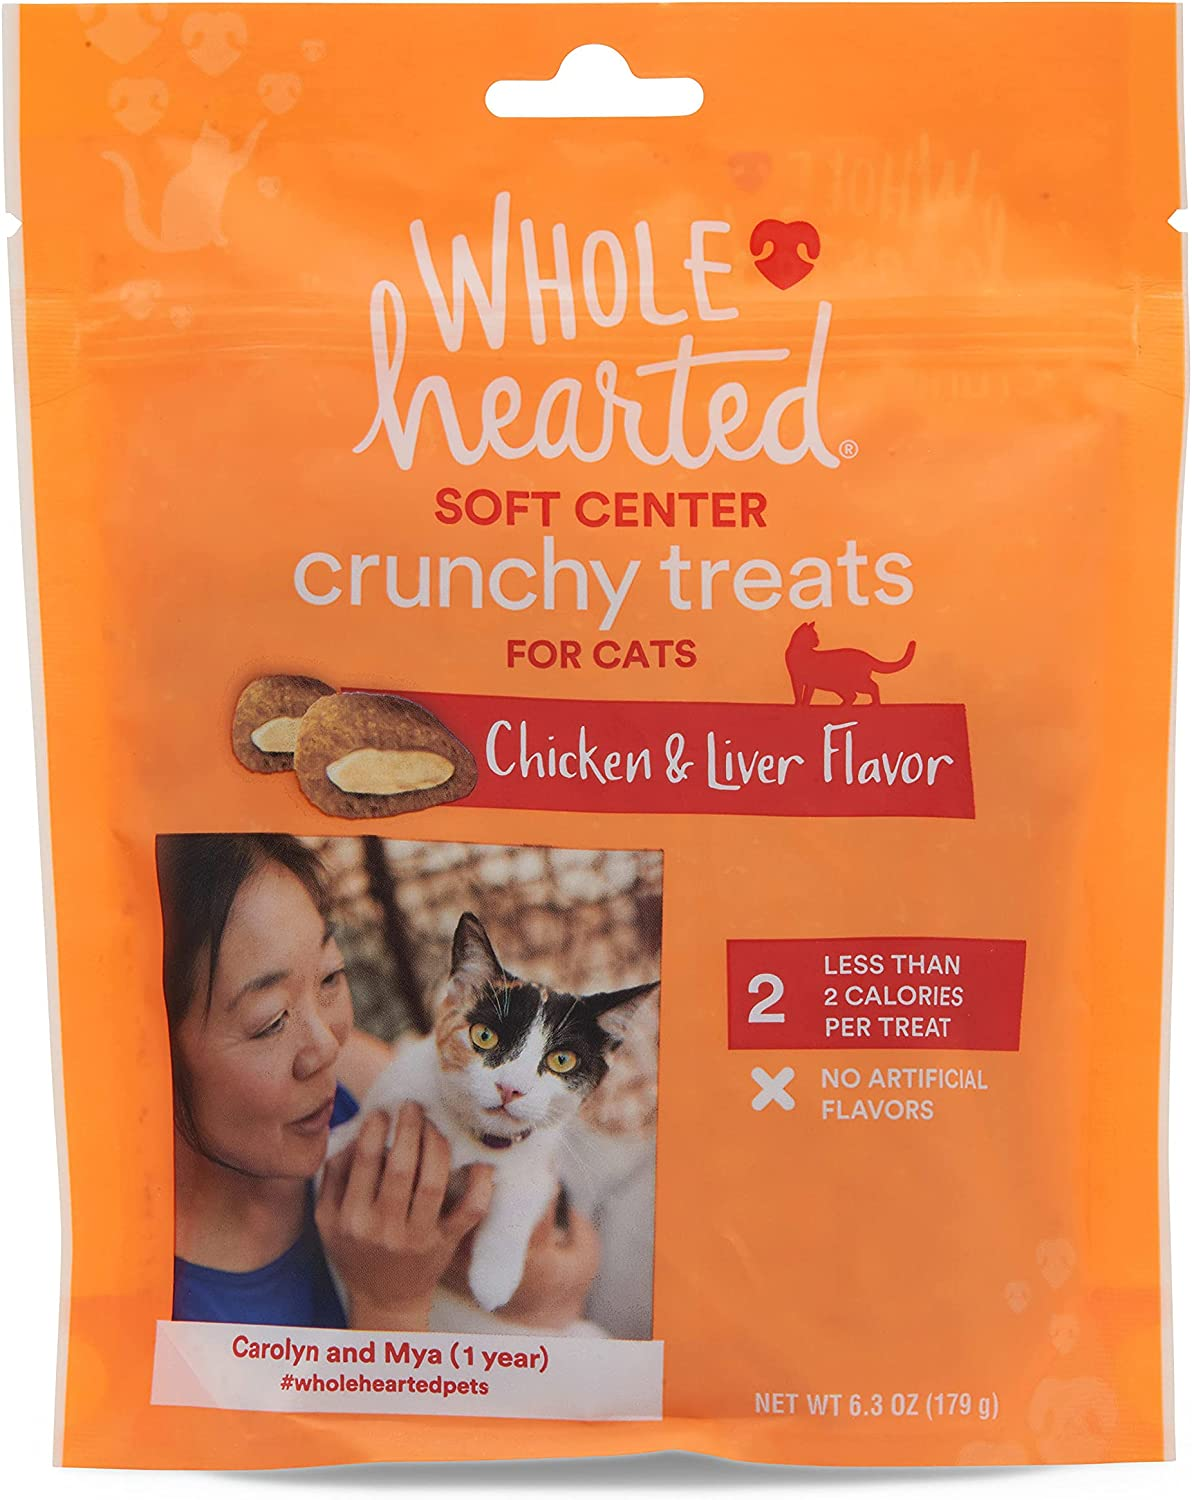 Petco Brand - WholeHearted Soft Center Crunchy Chicken and Liver Flavor Treats for Cats, 6.3 oz.